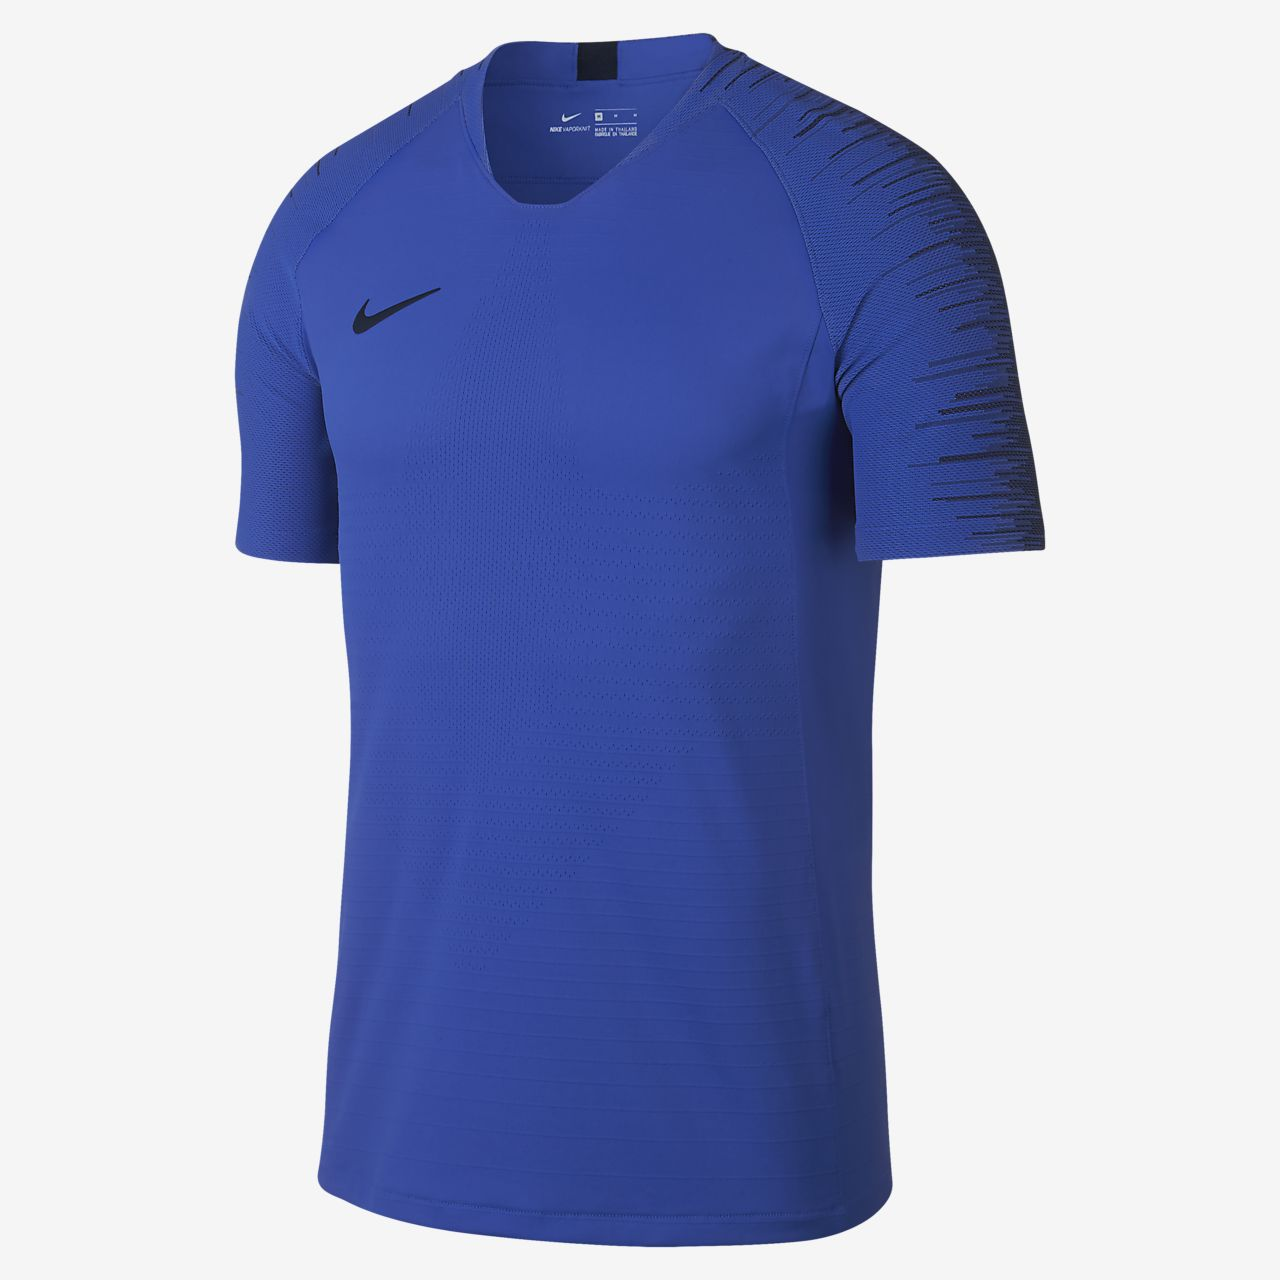 d0dfd2245ded8 Nike VaporKnit Strike Men s Short-Sleeve Football Top. Nike.com AE